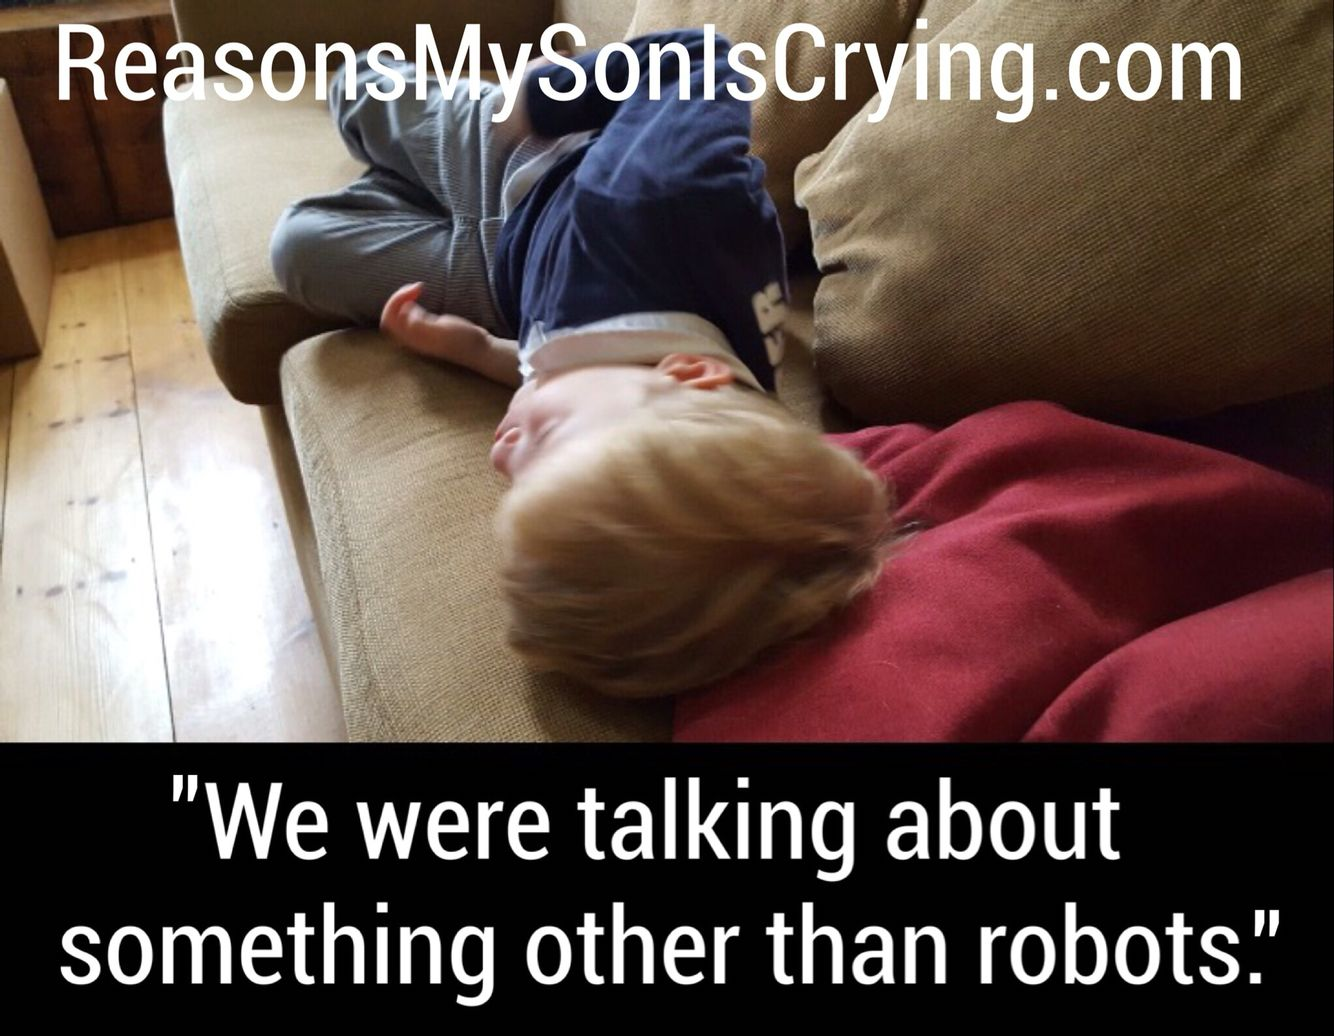 """We were talking about something other than robots."" Submitted By: Ben W. Location: United Kingdom"